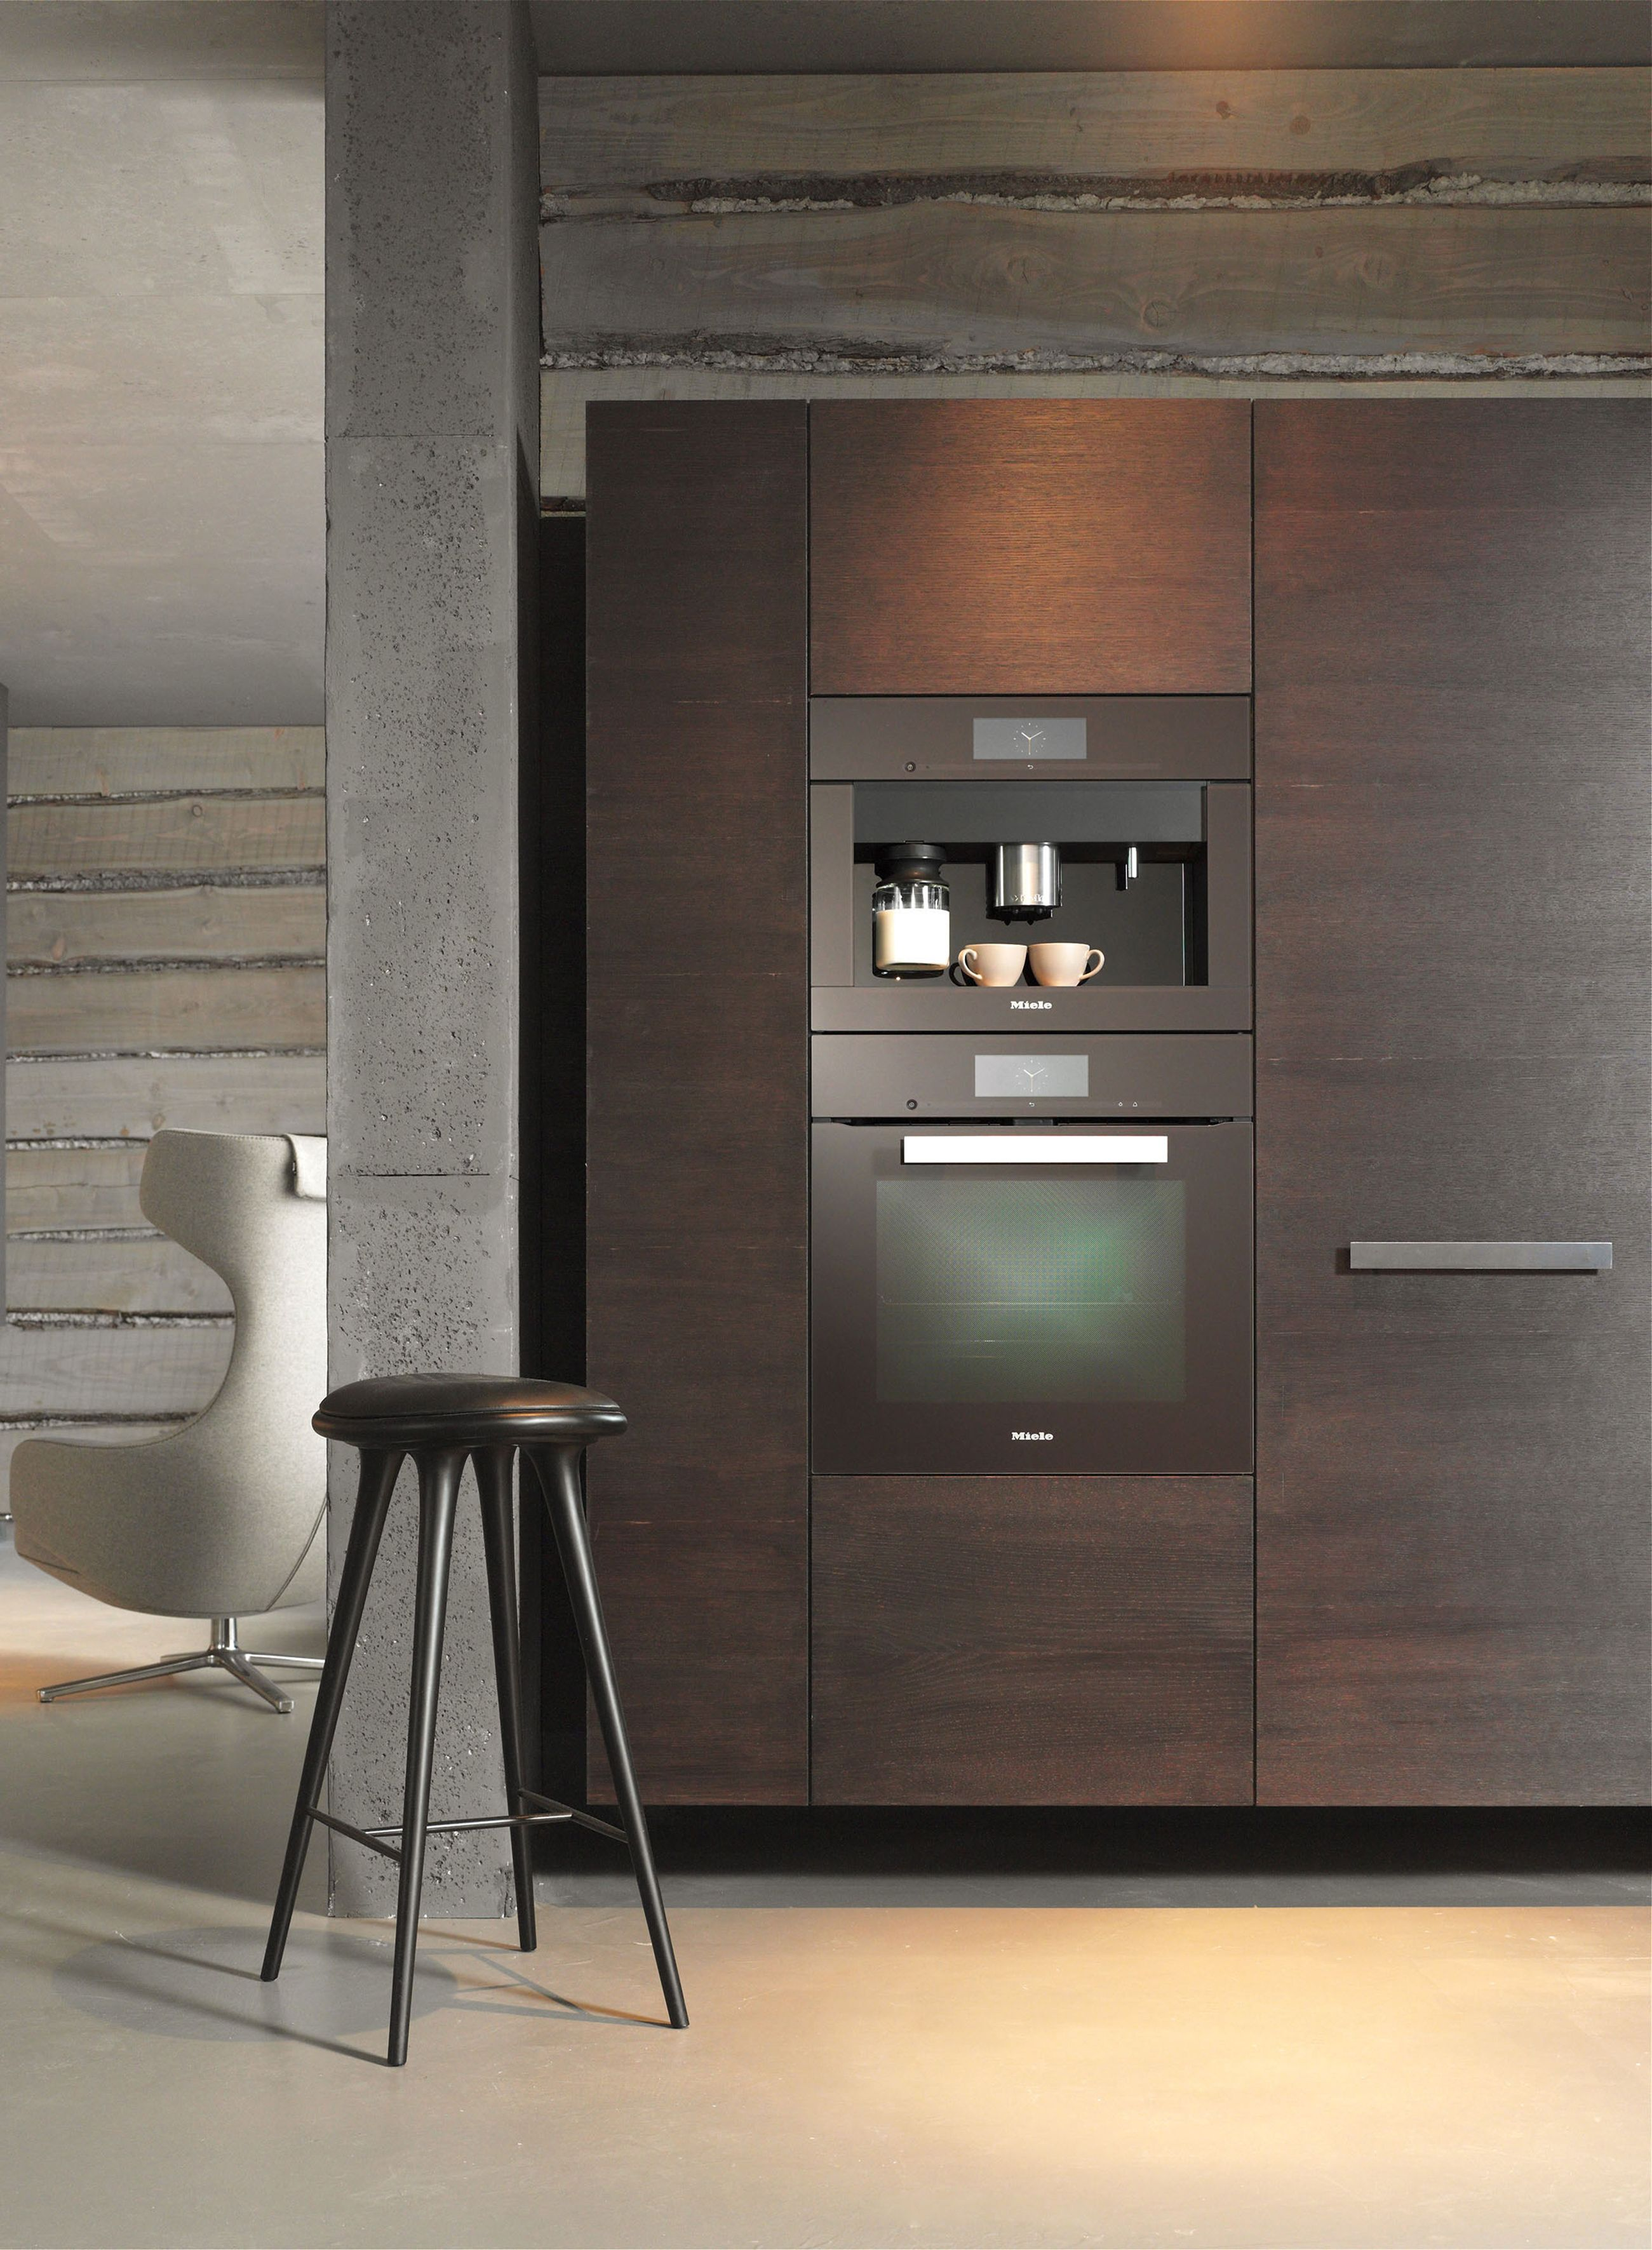 A Spotlight Perfectly Illuminates The Beautiful Miele Pureline